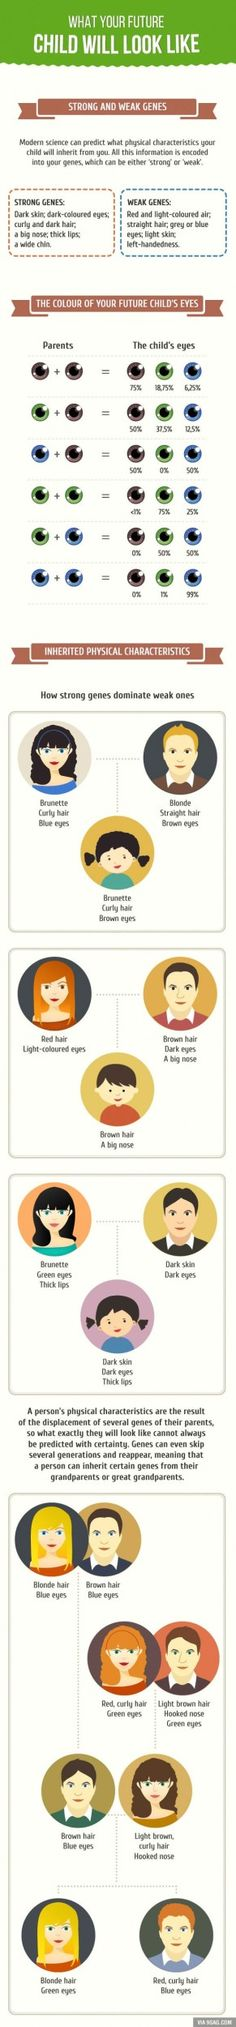 Amazing Guide To What Your Future Child Will Look Like